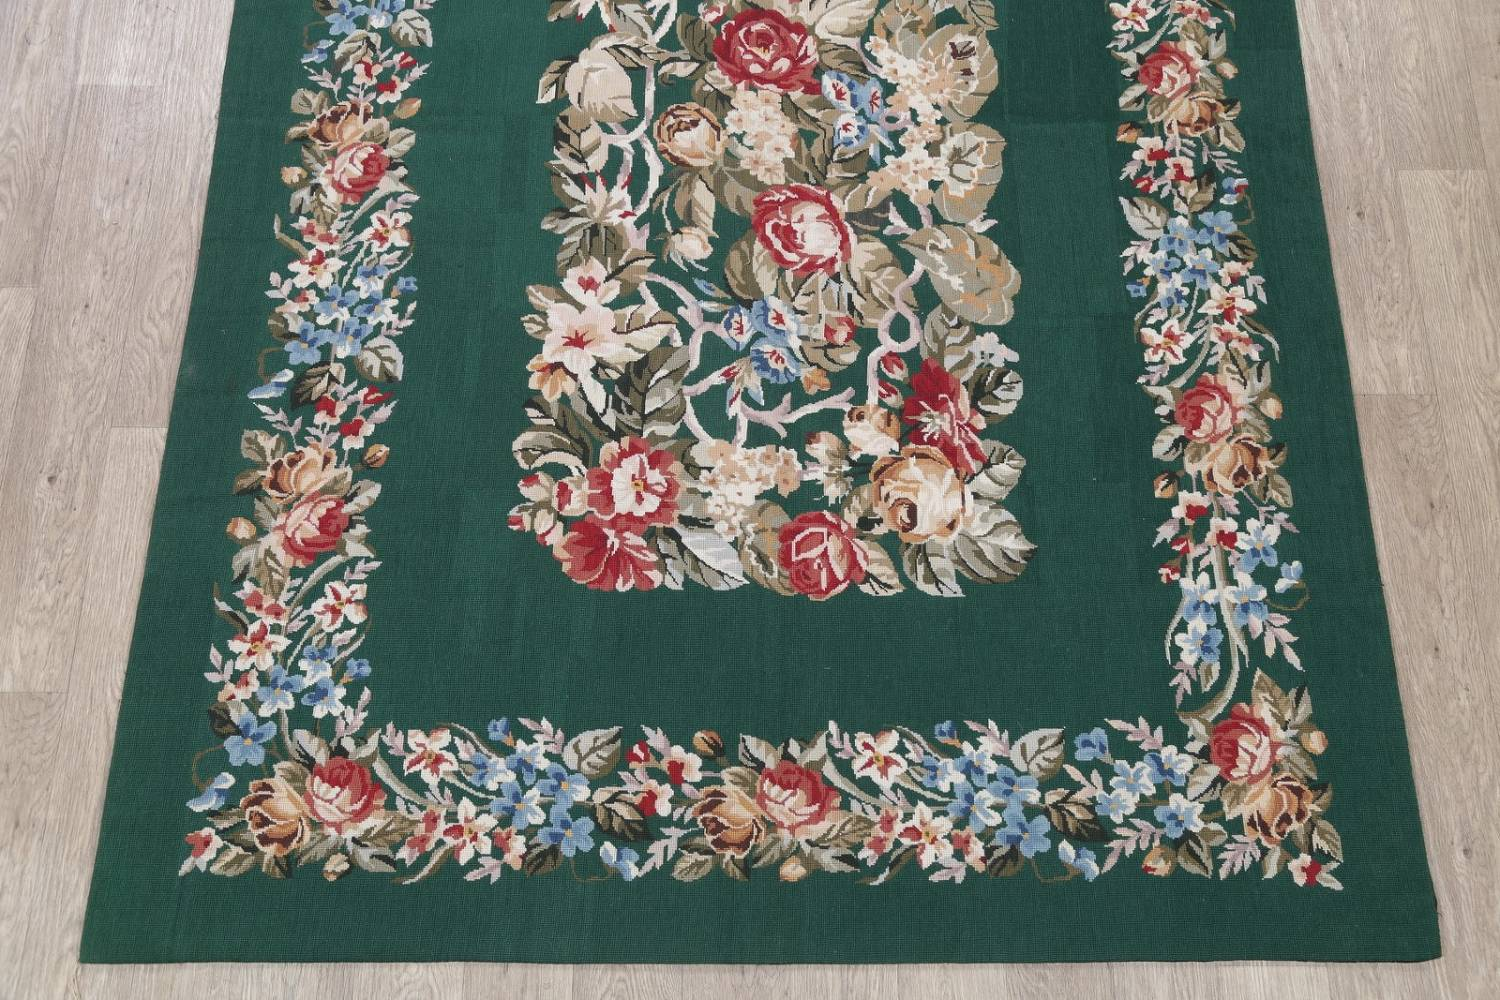 Floral Green Aubusson Chinese Oriental Hand-Woven Area Rug Wool 6x9 image 5